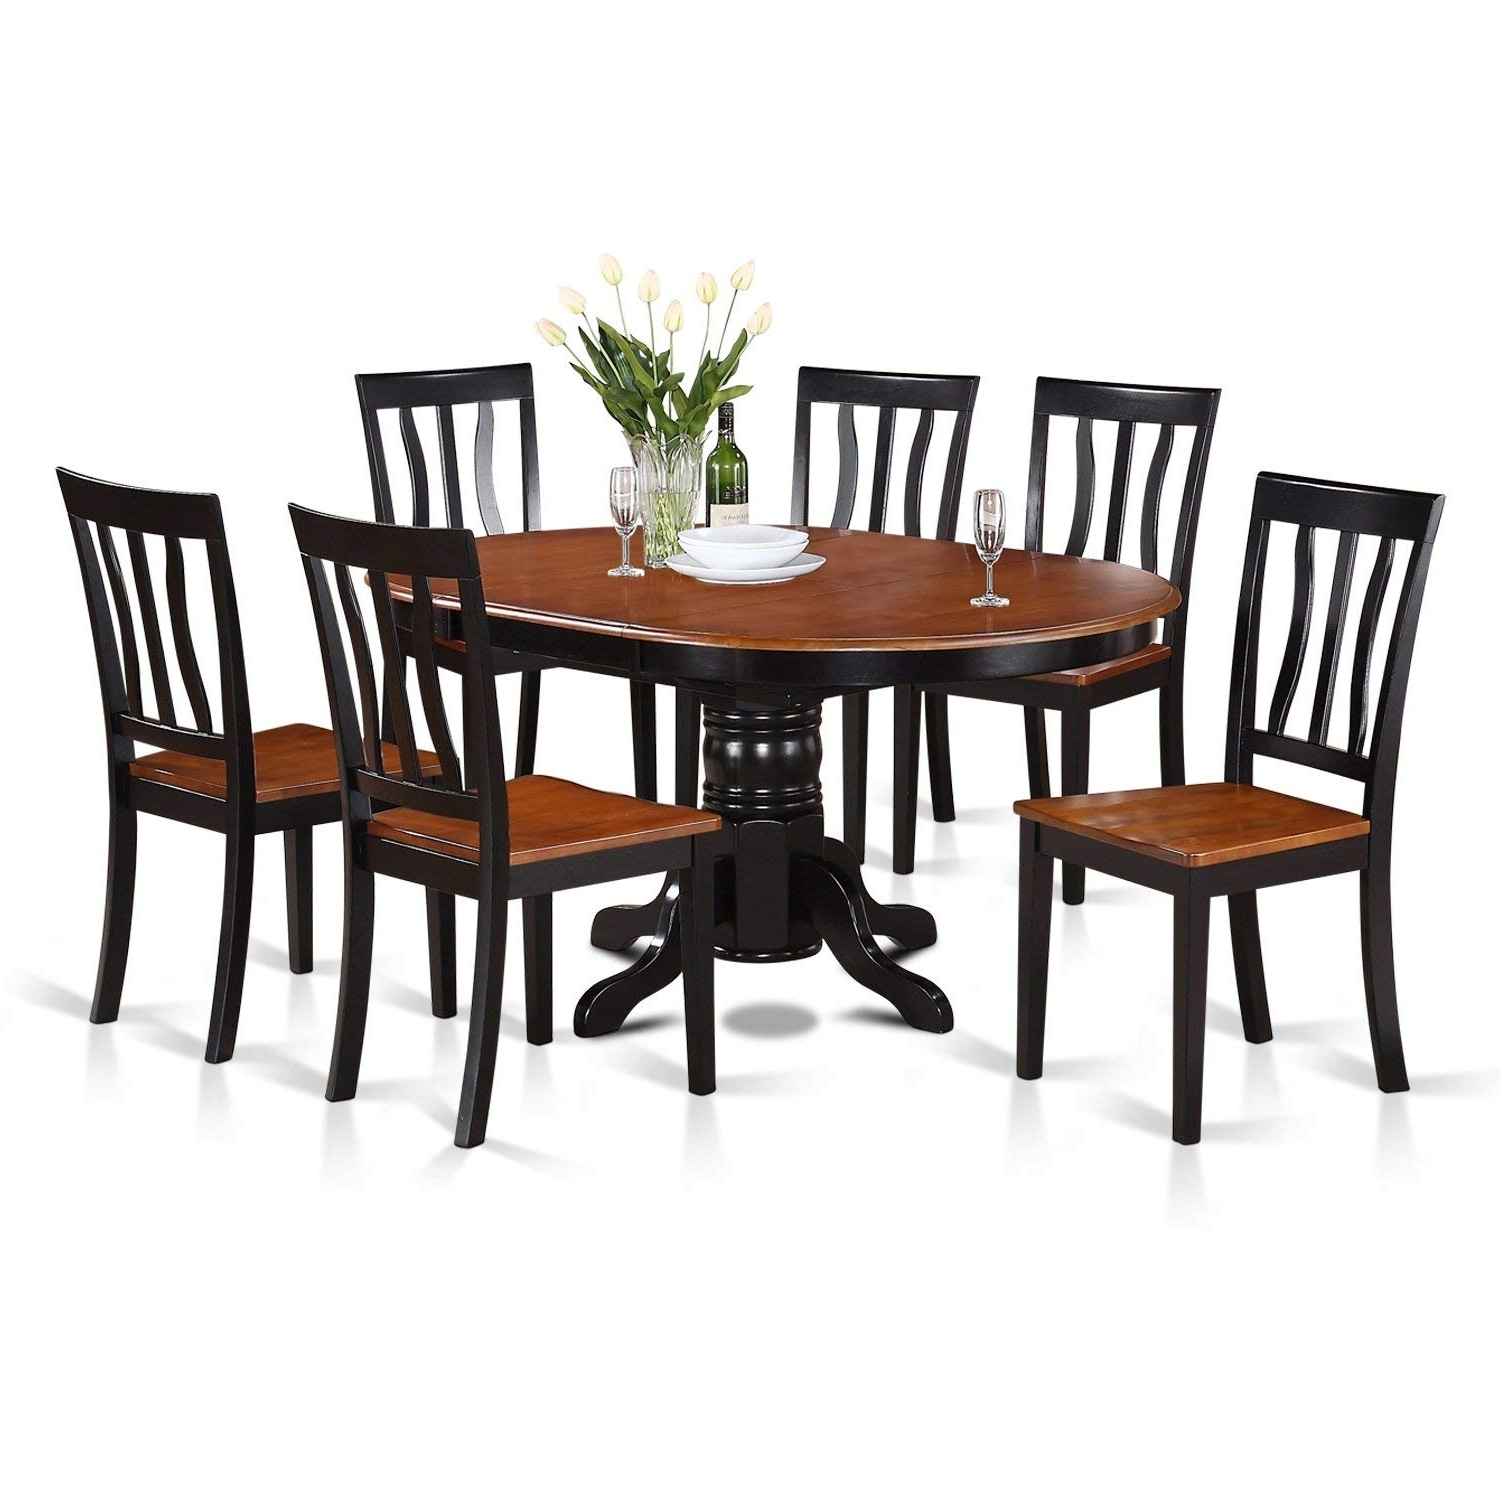 2018 6 Seat Dining Tables And Chairs For Amazon: East West Furniture Avat7 Blk W 7 Piece Dining Table Set (View 5 of 25)